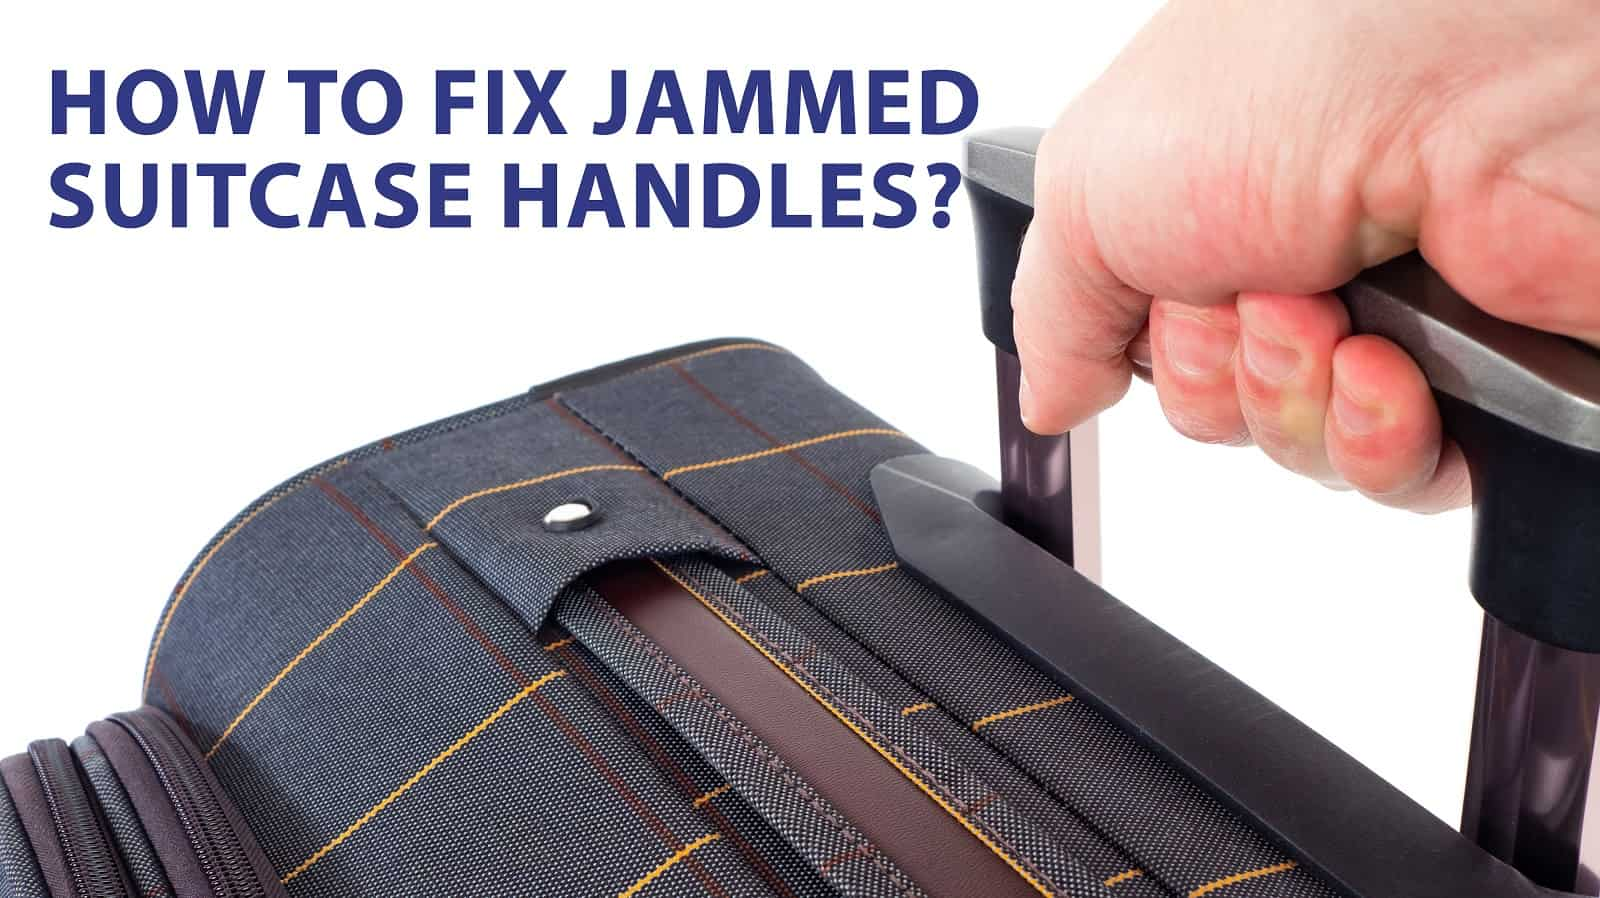 jammed luggage handles